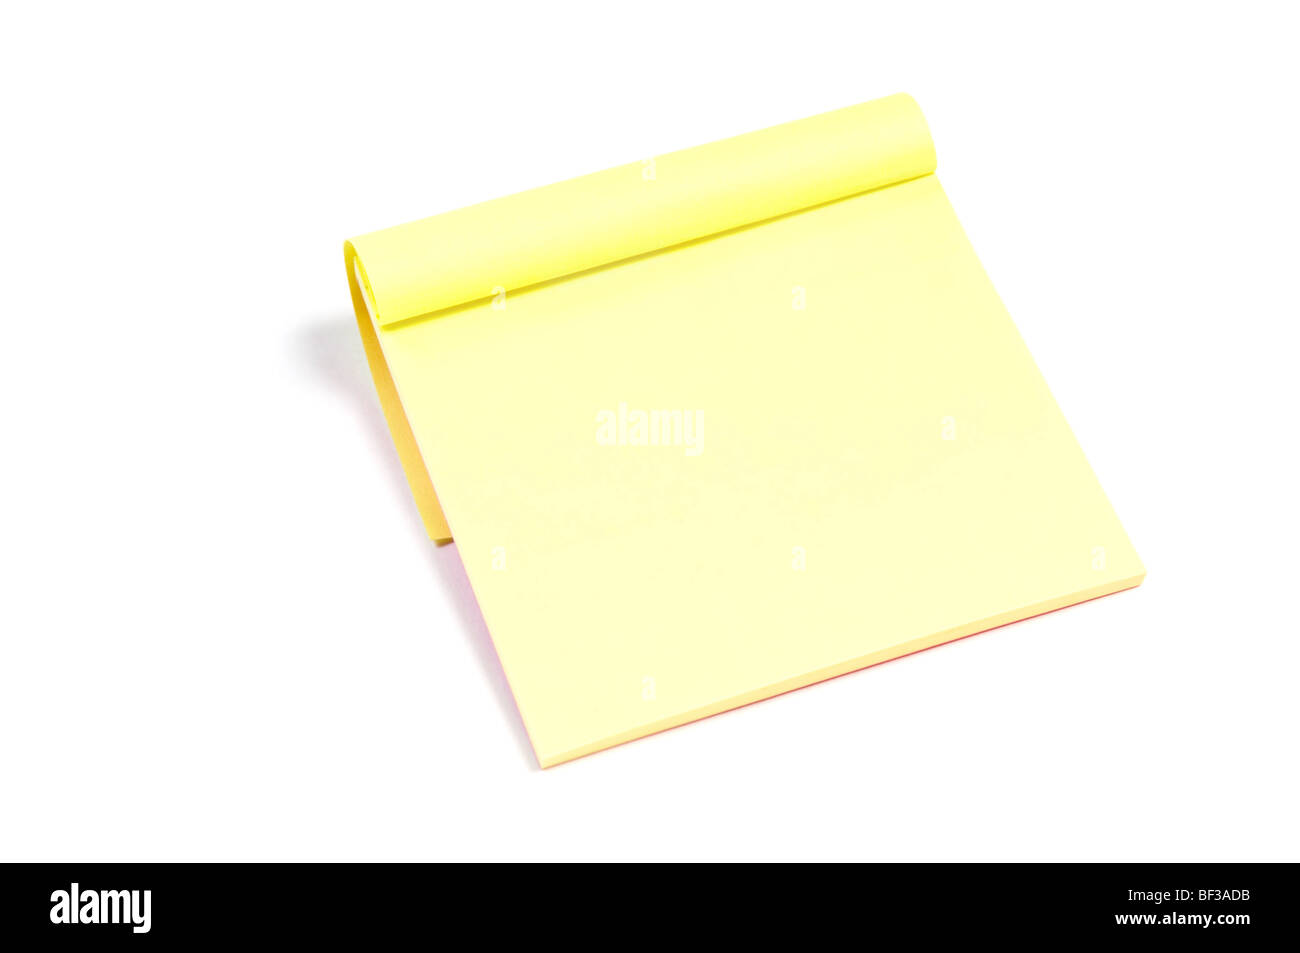 Sticky note paper pad isolated on white - Stock Image